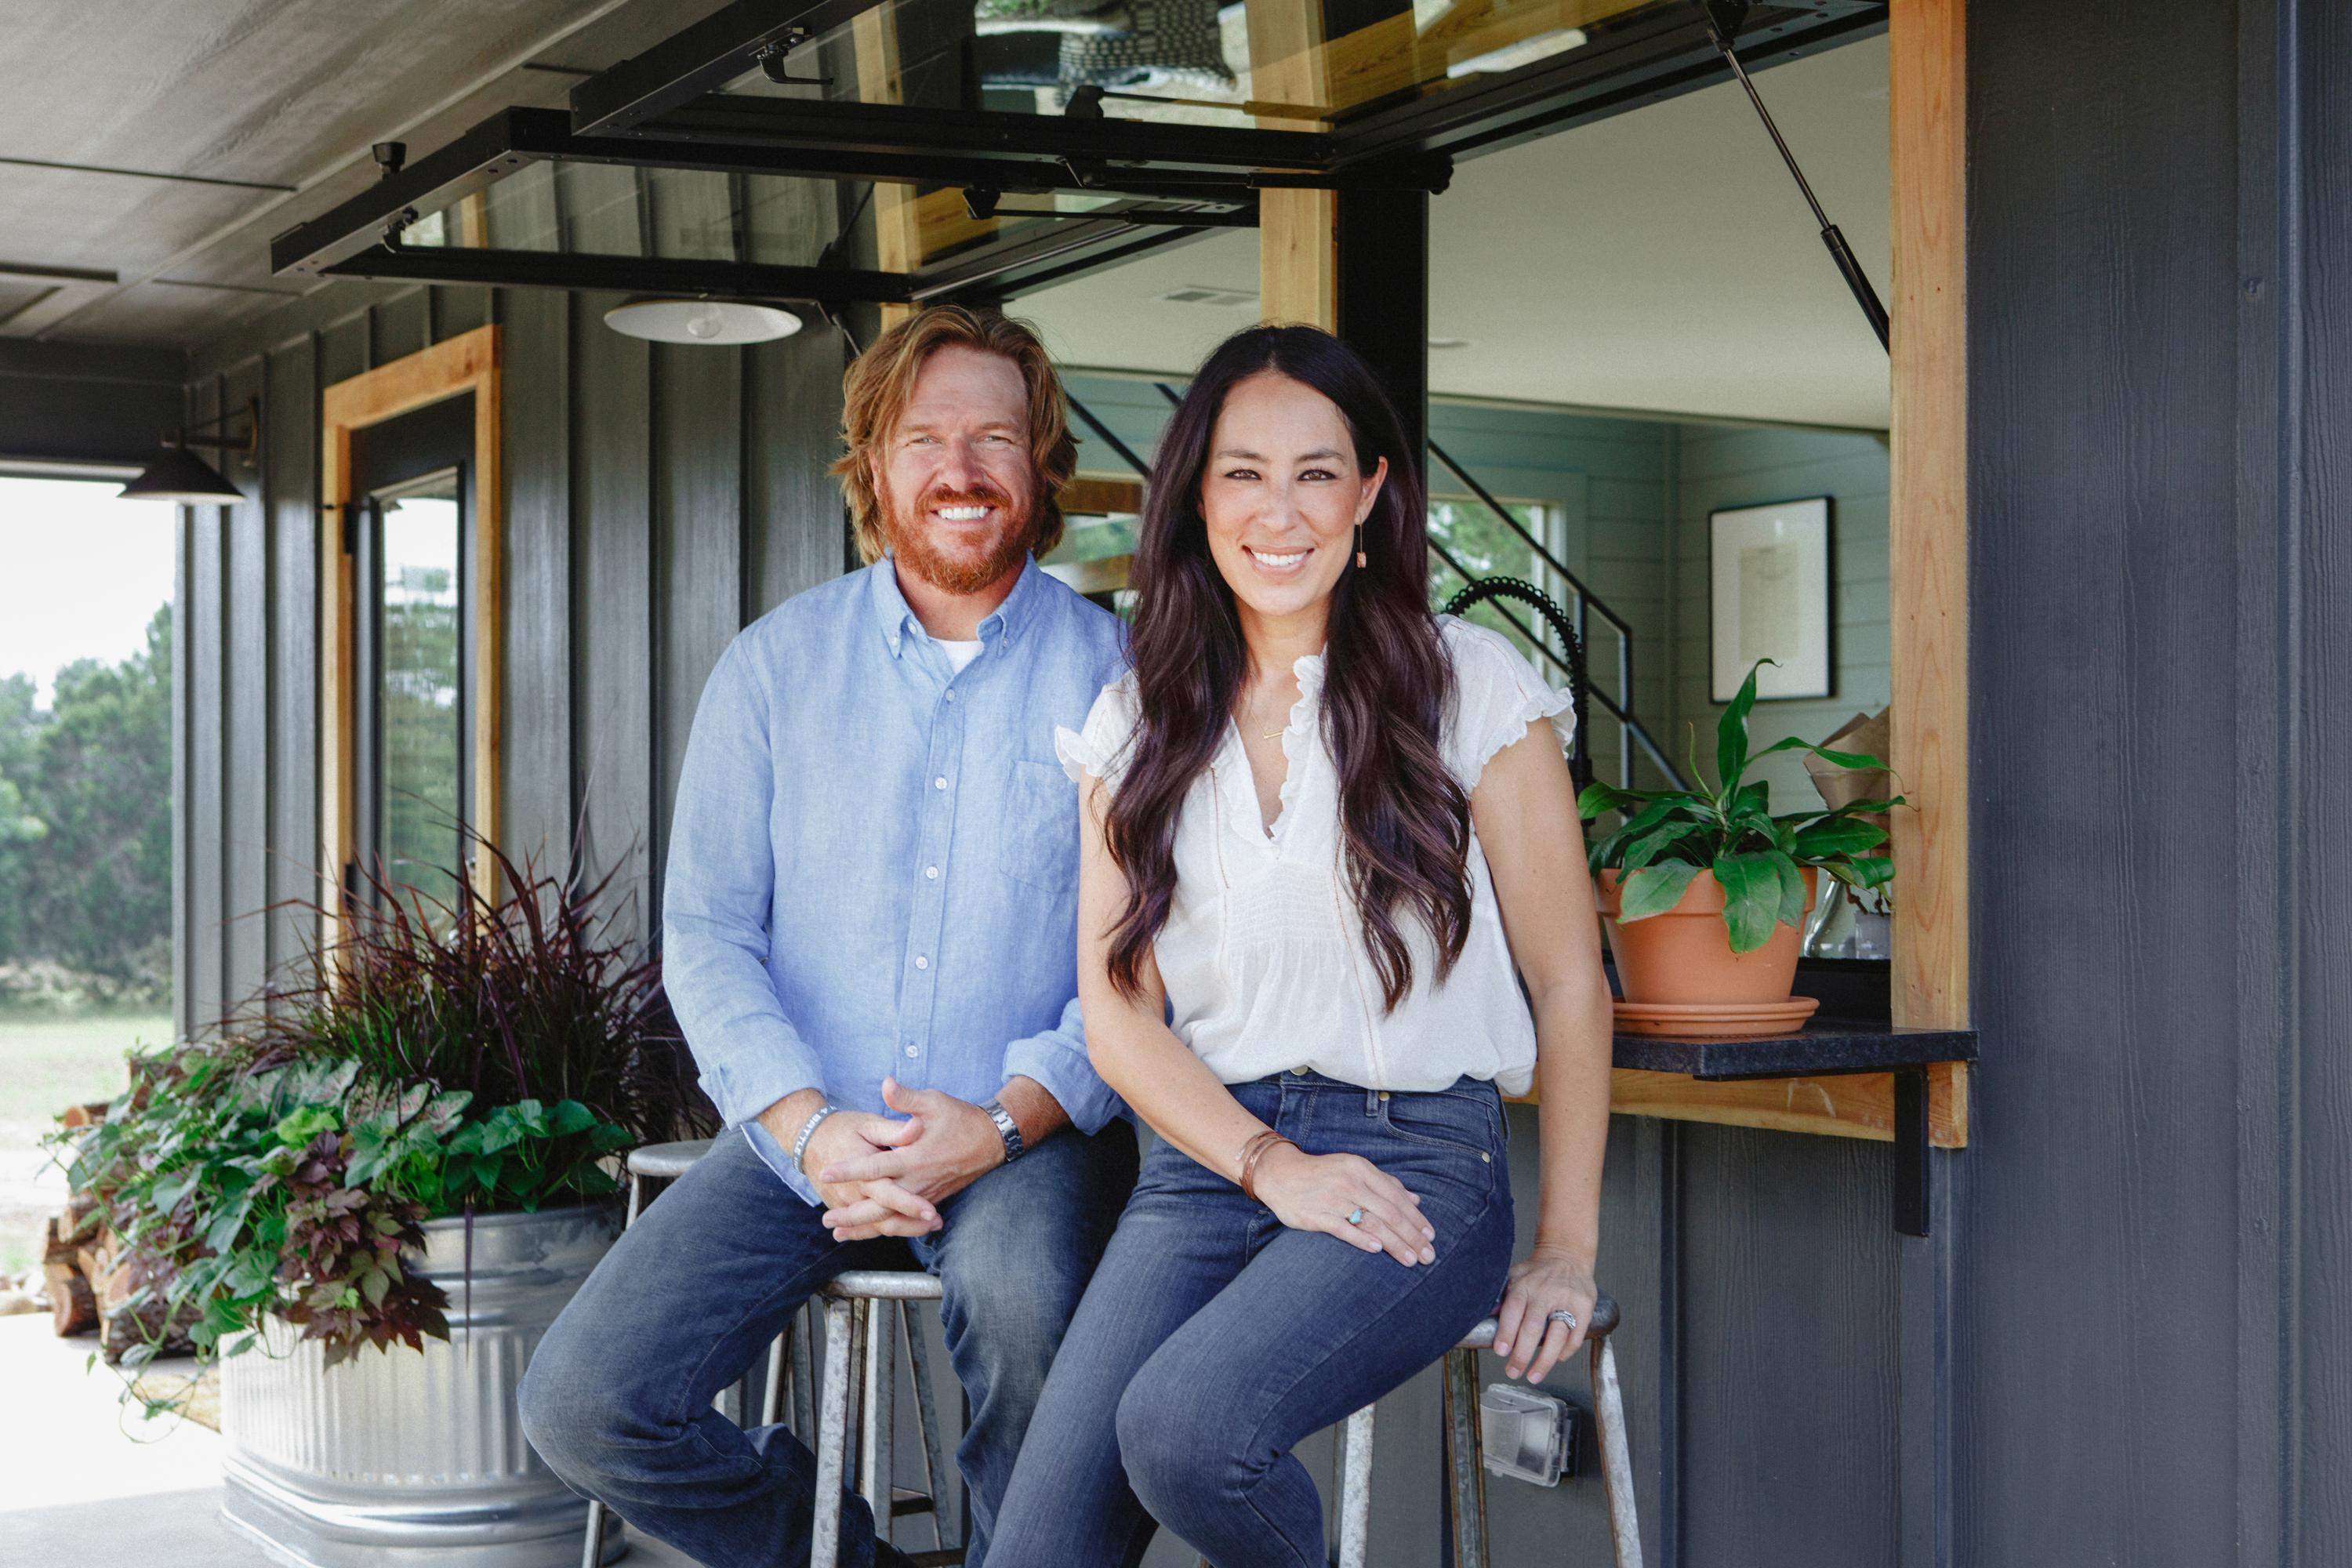 Discoverys Diy Network To Turn Into Chip And Joanna Gaines Channel